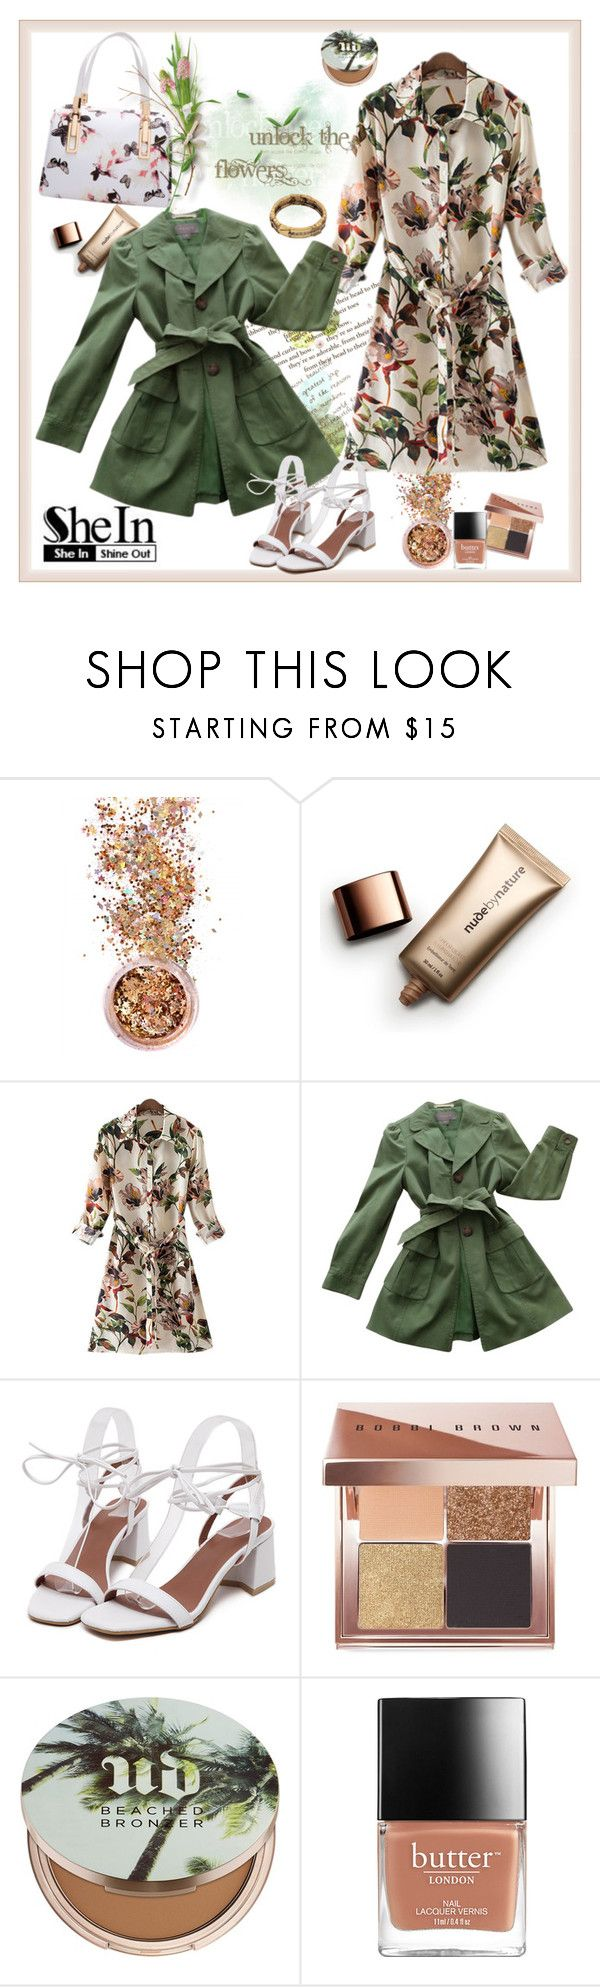 """Win SheIn #30 Coupon......"" by carola-corana ❤ liked on Polyvore featuring In Your Dreams, Nude by Nature, Ann Taylor, Bobbi Brown Cosmetics, Urban Decay and shein"